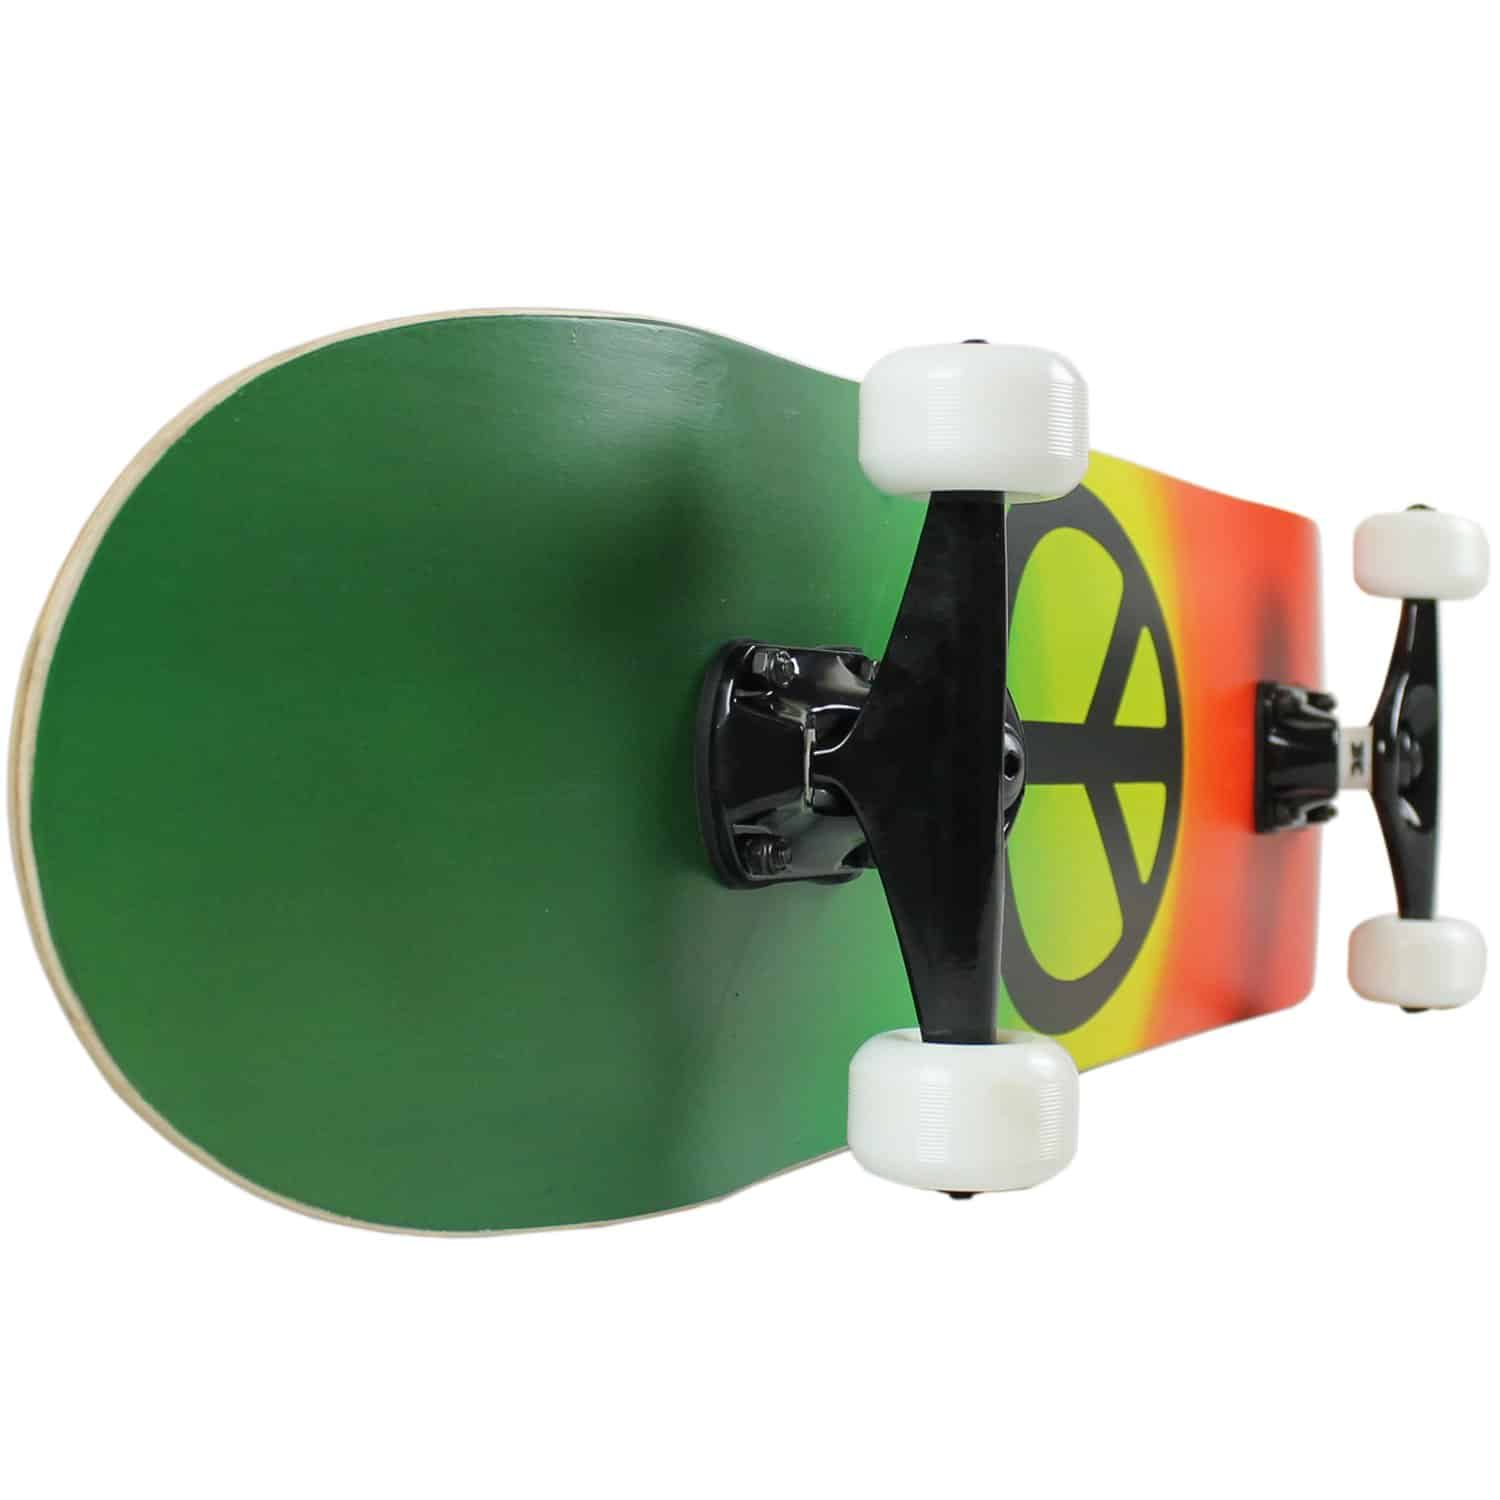 KPC Pro Skateboard with white wheels